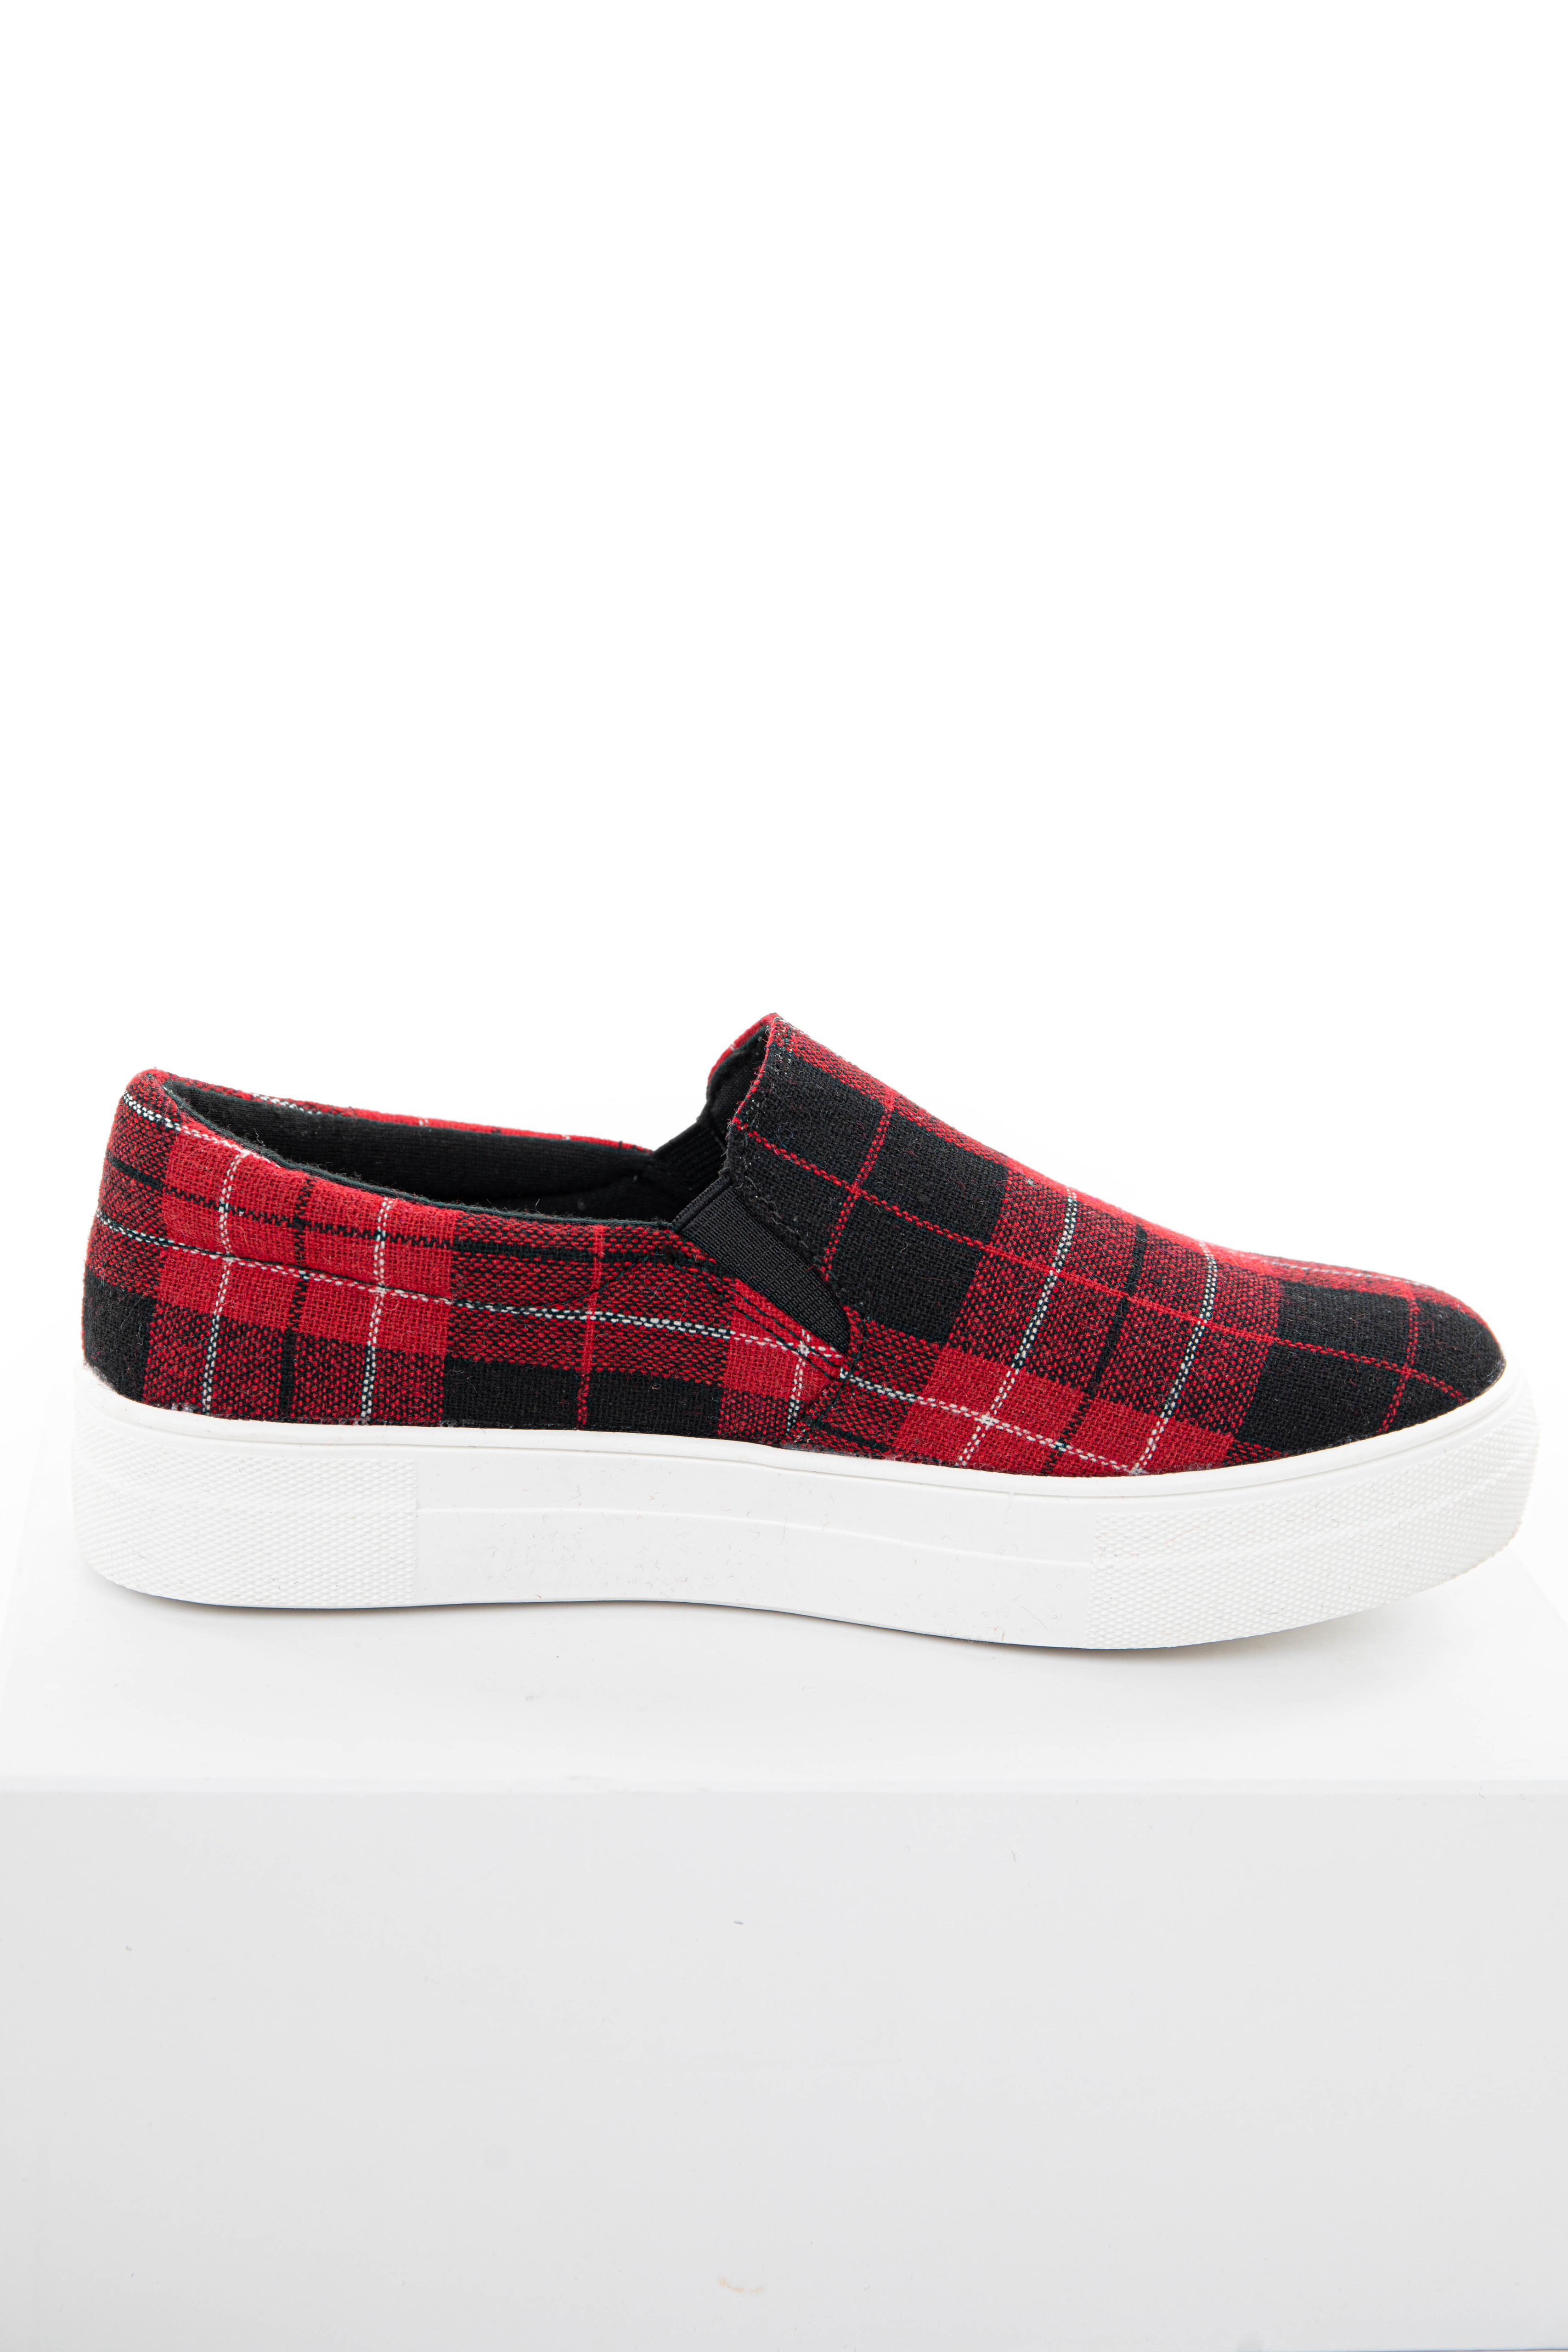 Cranberry and Black Plaid Slip On Sneakers with Rubber Soles